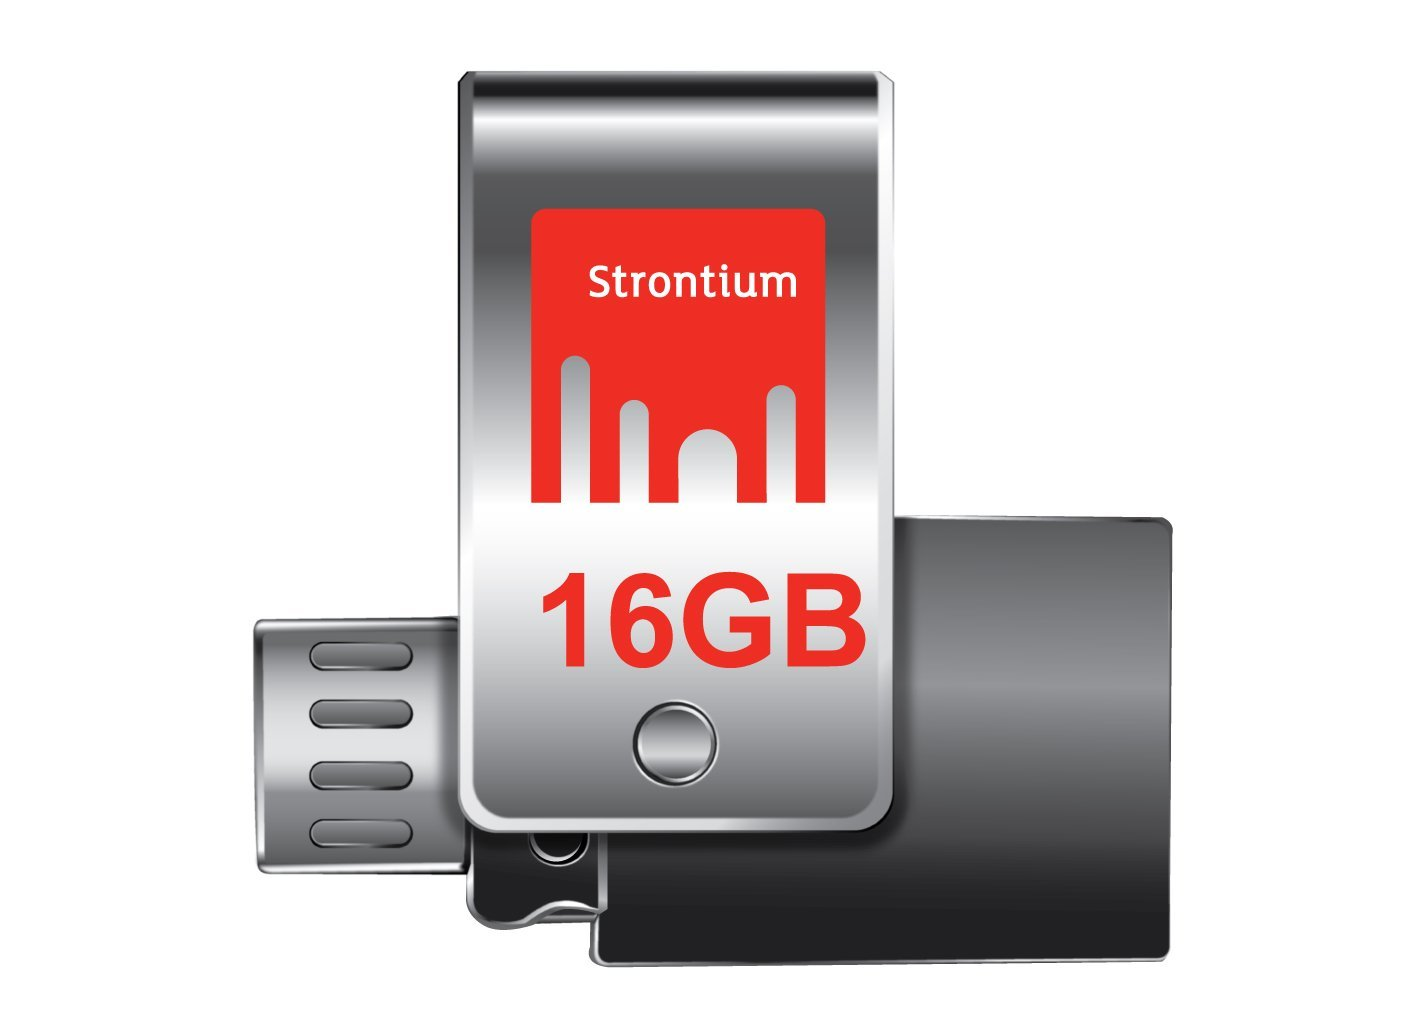 Strontium Nitro Plus OTG Pen Drive, USB3.0, 16GB for Rs 420 (58% off)